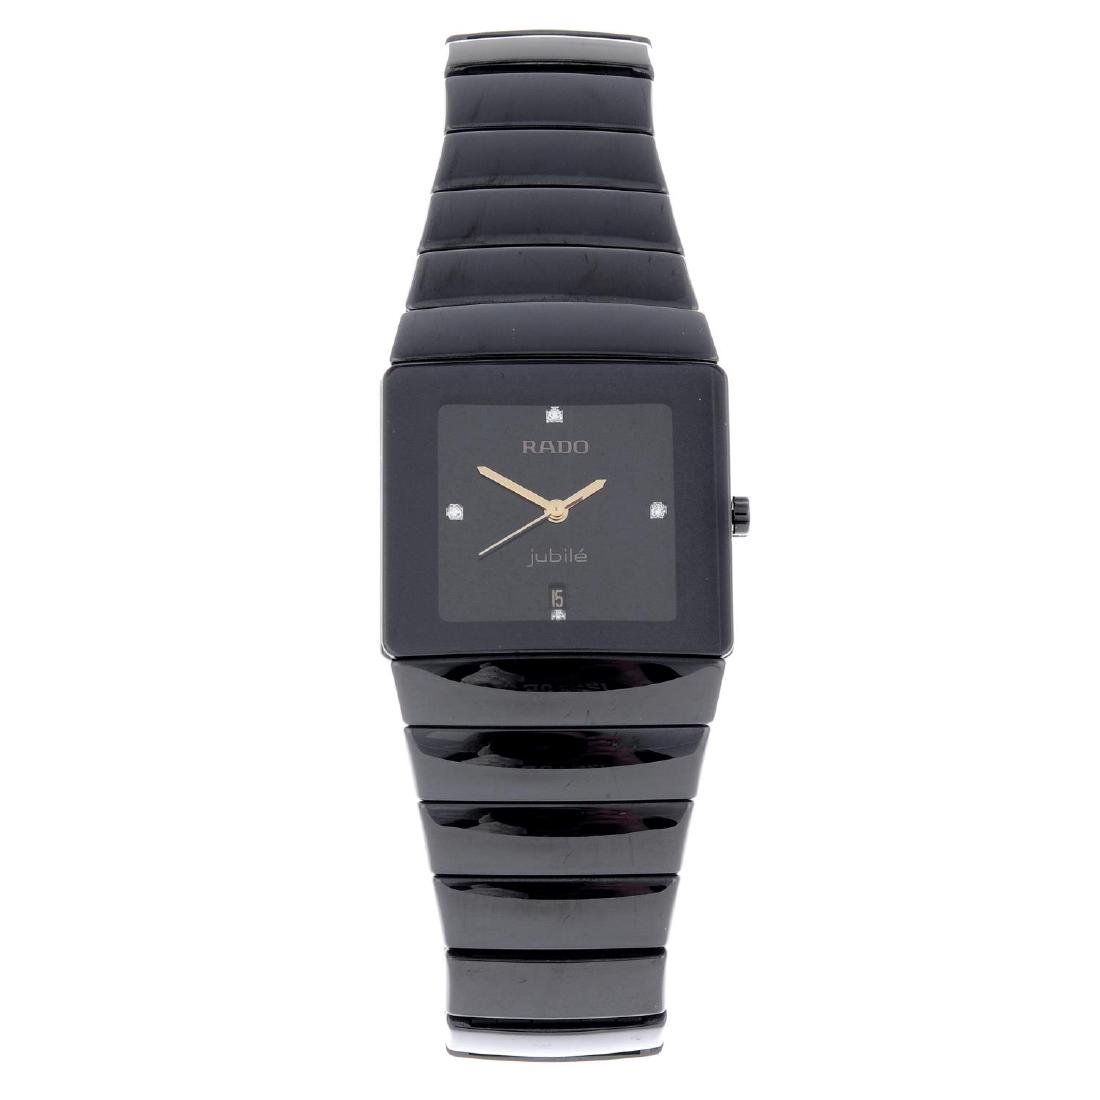 RADO - a mid-size DiaStar bracelet watch. Ceramic case.